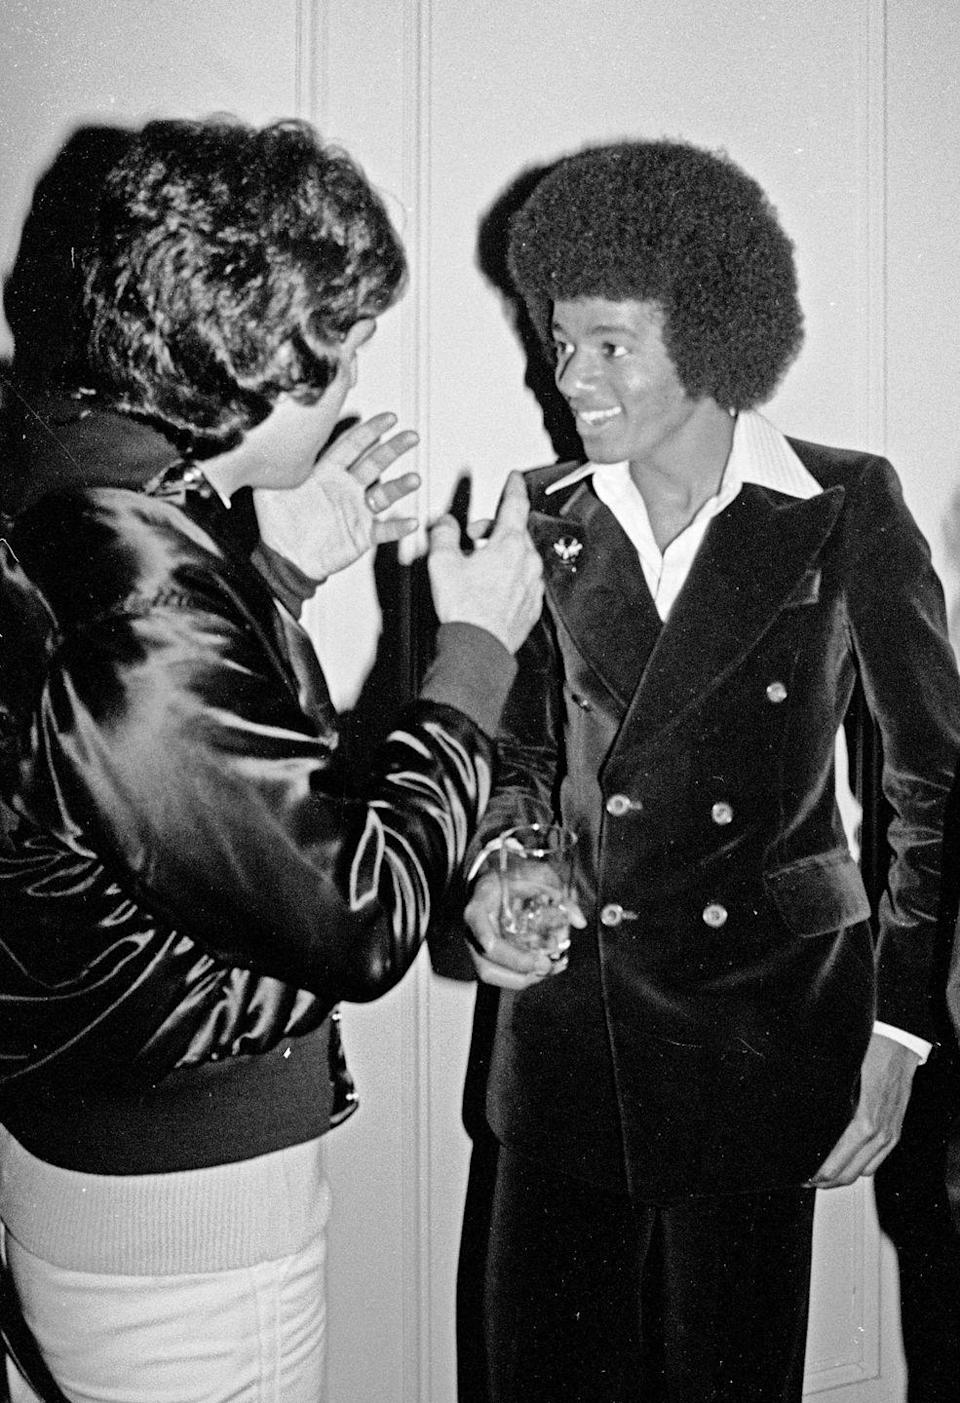 <p>Michael Jackson visits Studio 54 on May 31, 1977 in New York City.</p>